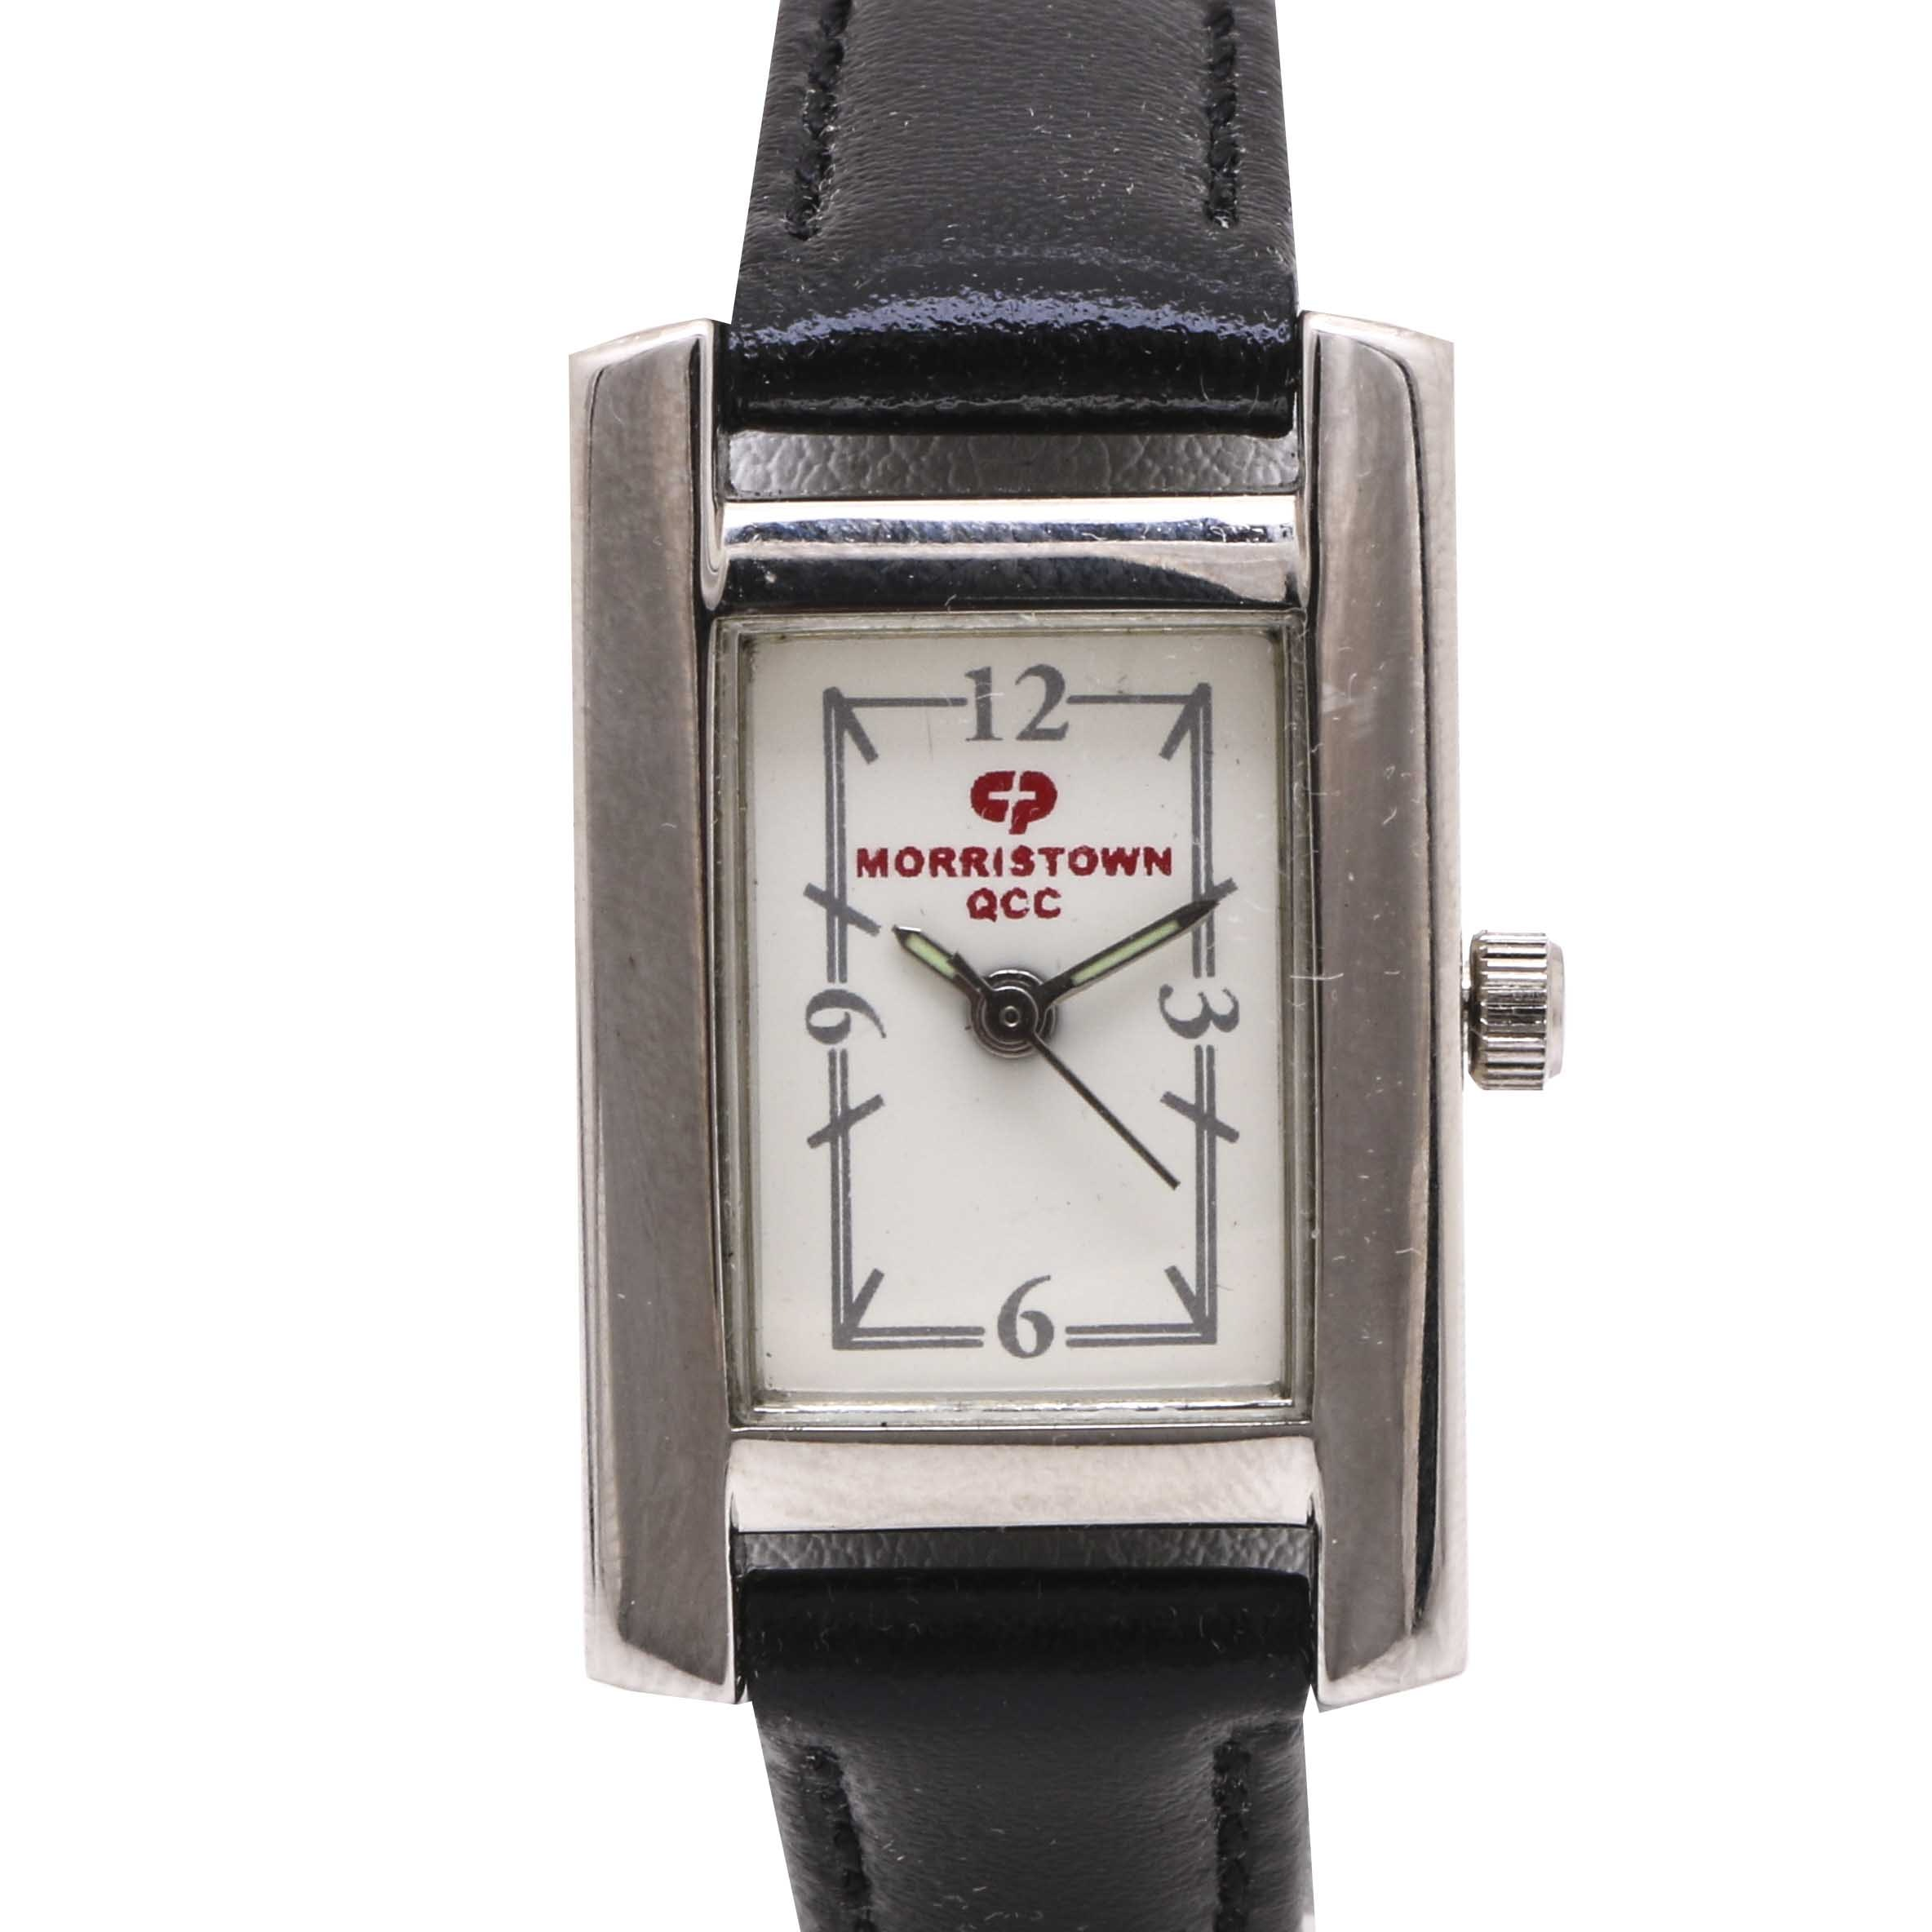 Morristown QCC Black Leather Strap Wristwatch